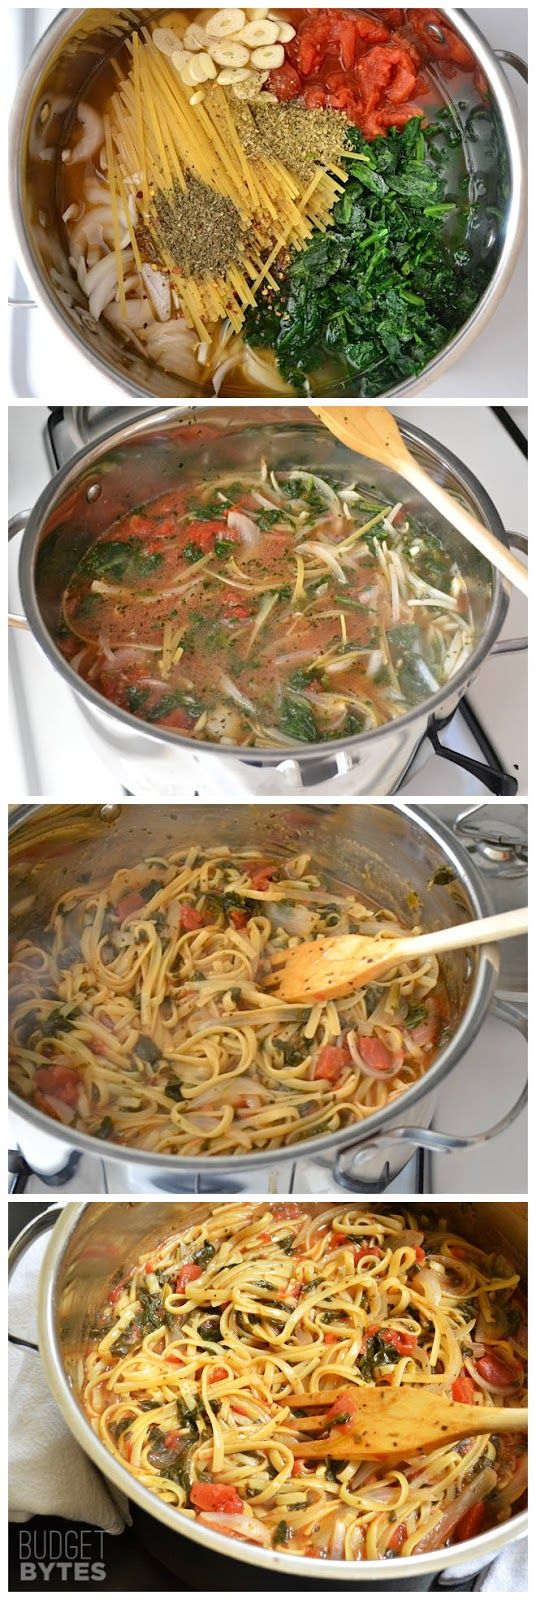 Italian Wonderpot – This pasta is incredibly easy to make and inexpensive. No draining necessary! Switch out whichever veggies you like or add more to make it your